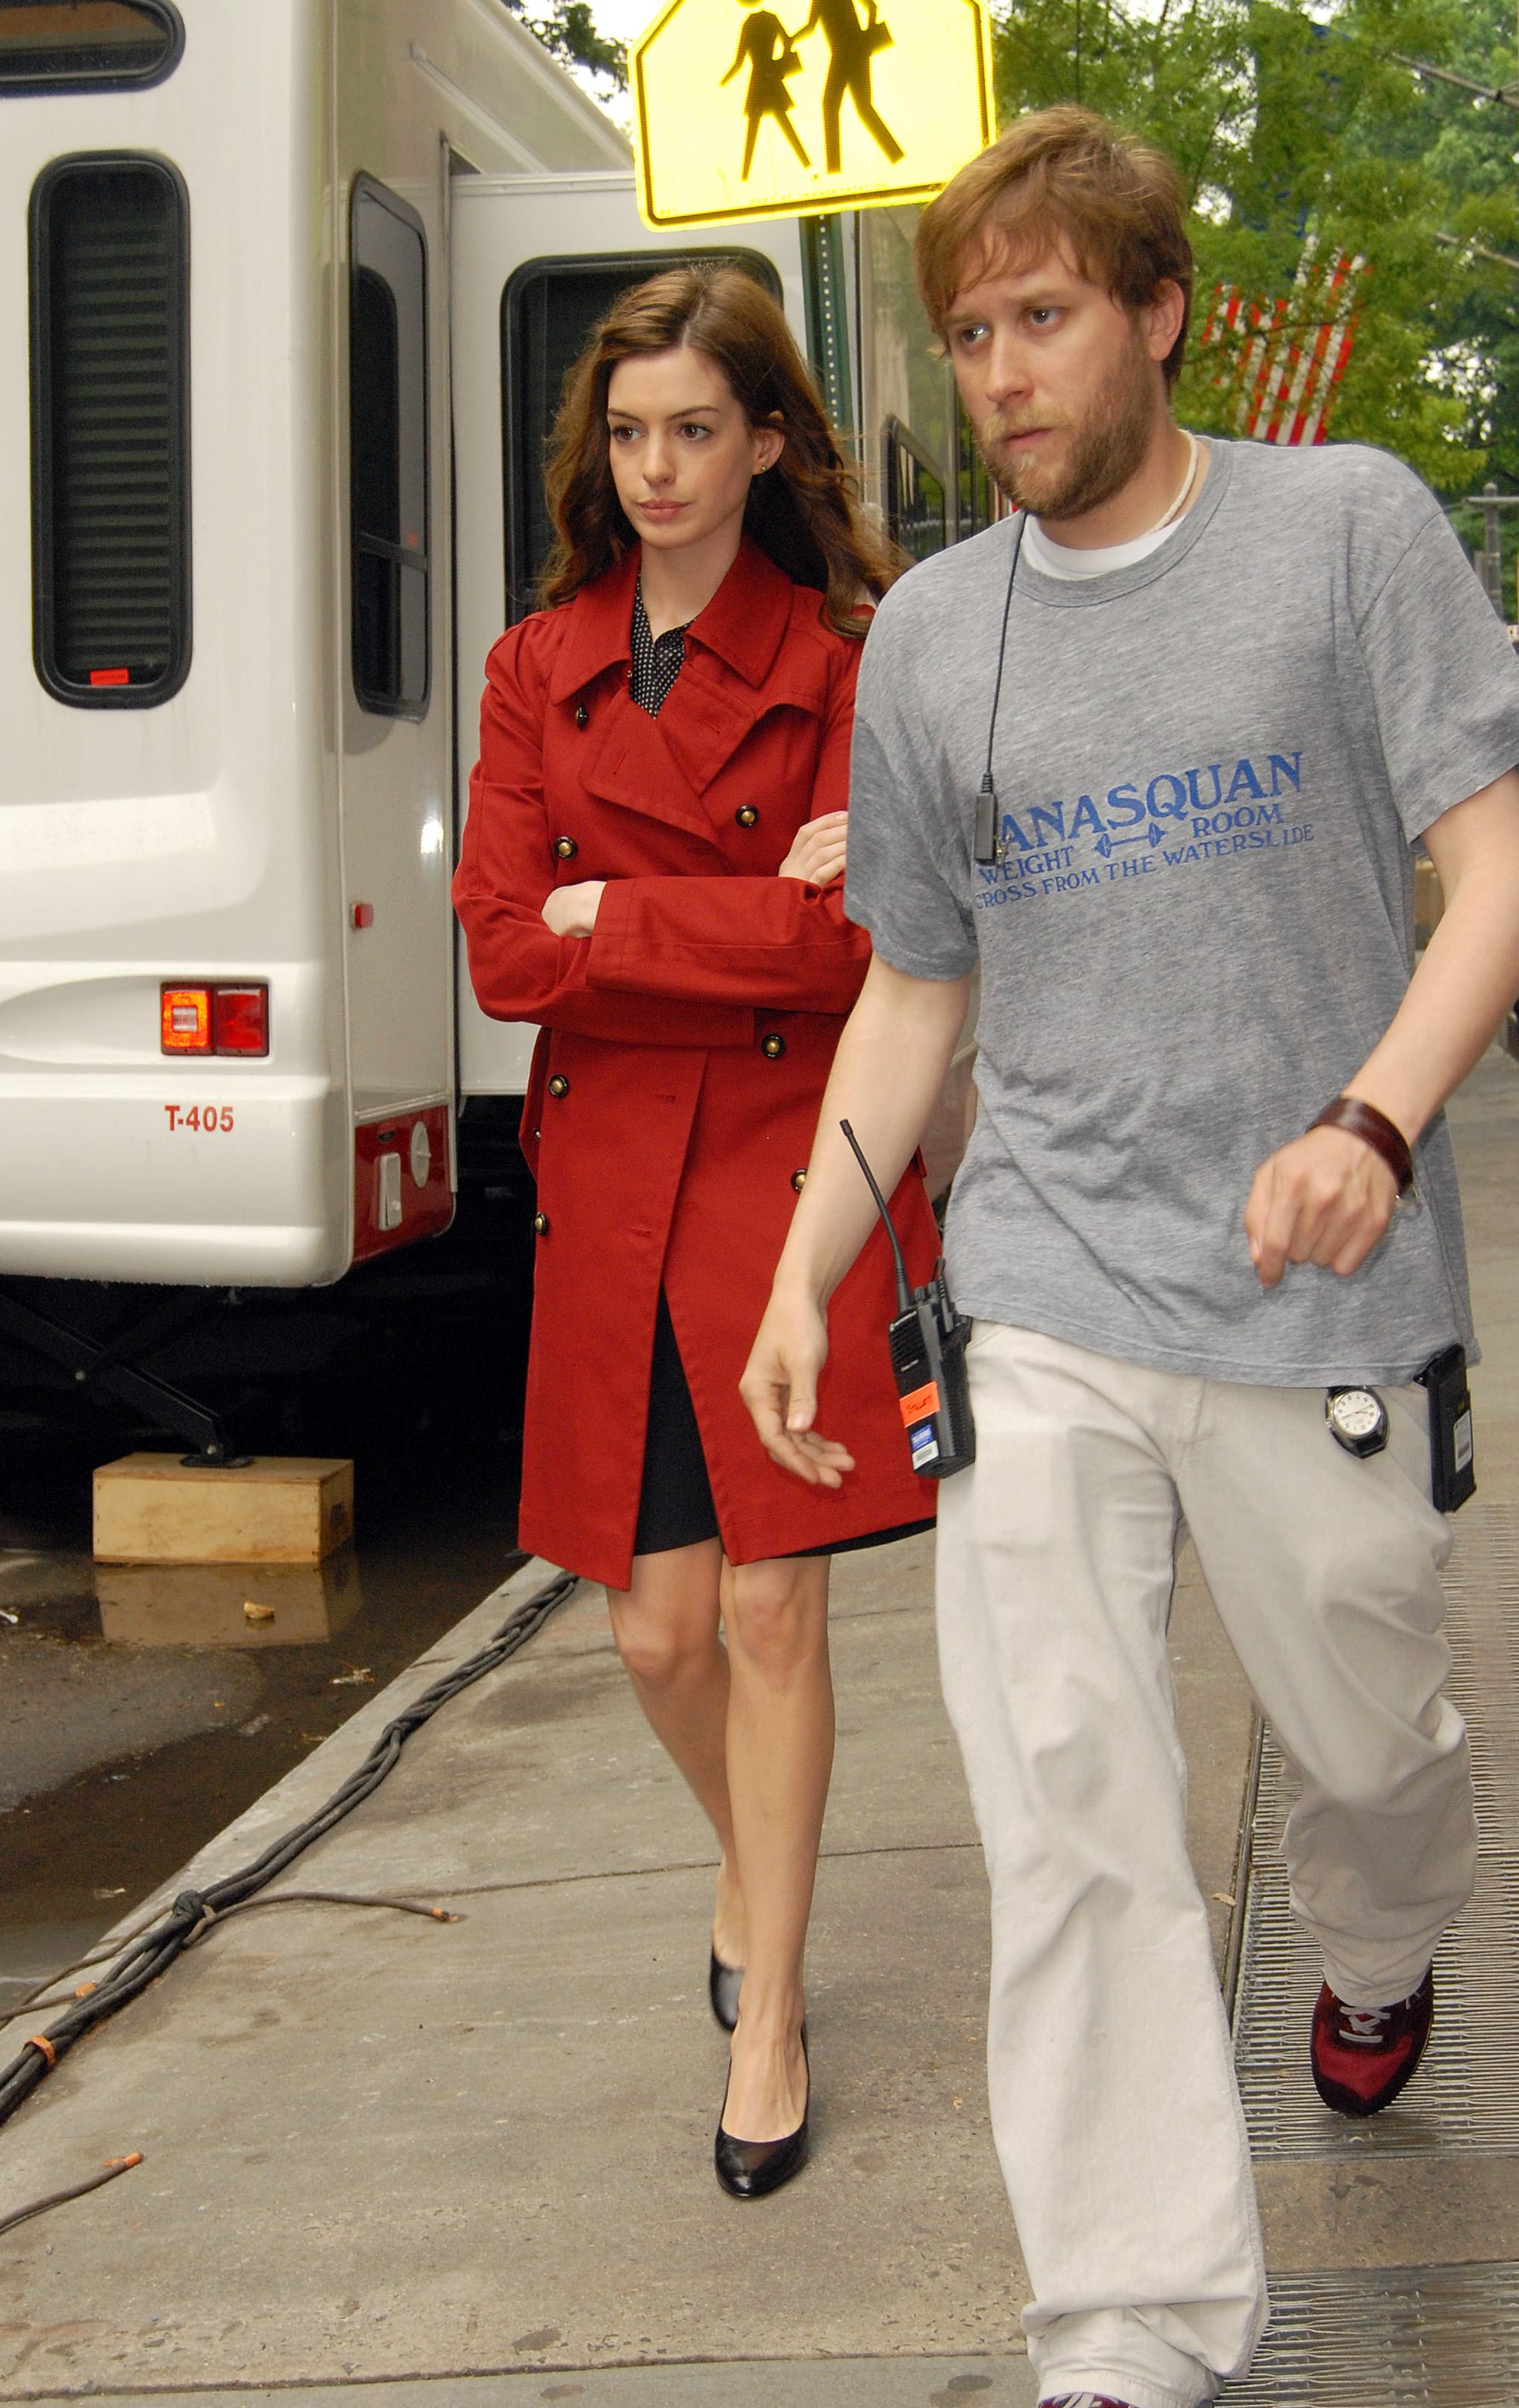 55681_Anne_Hathaway_2008-05-27_-_on_the_set_of_Bride_Wars_in_NY_436_122_344lo.jpg